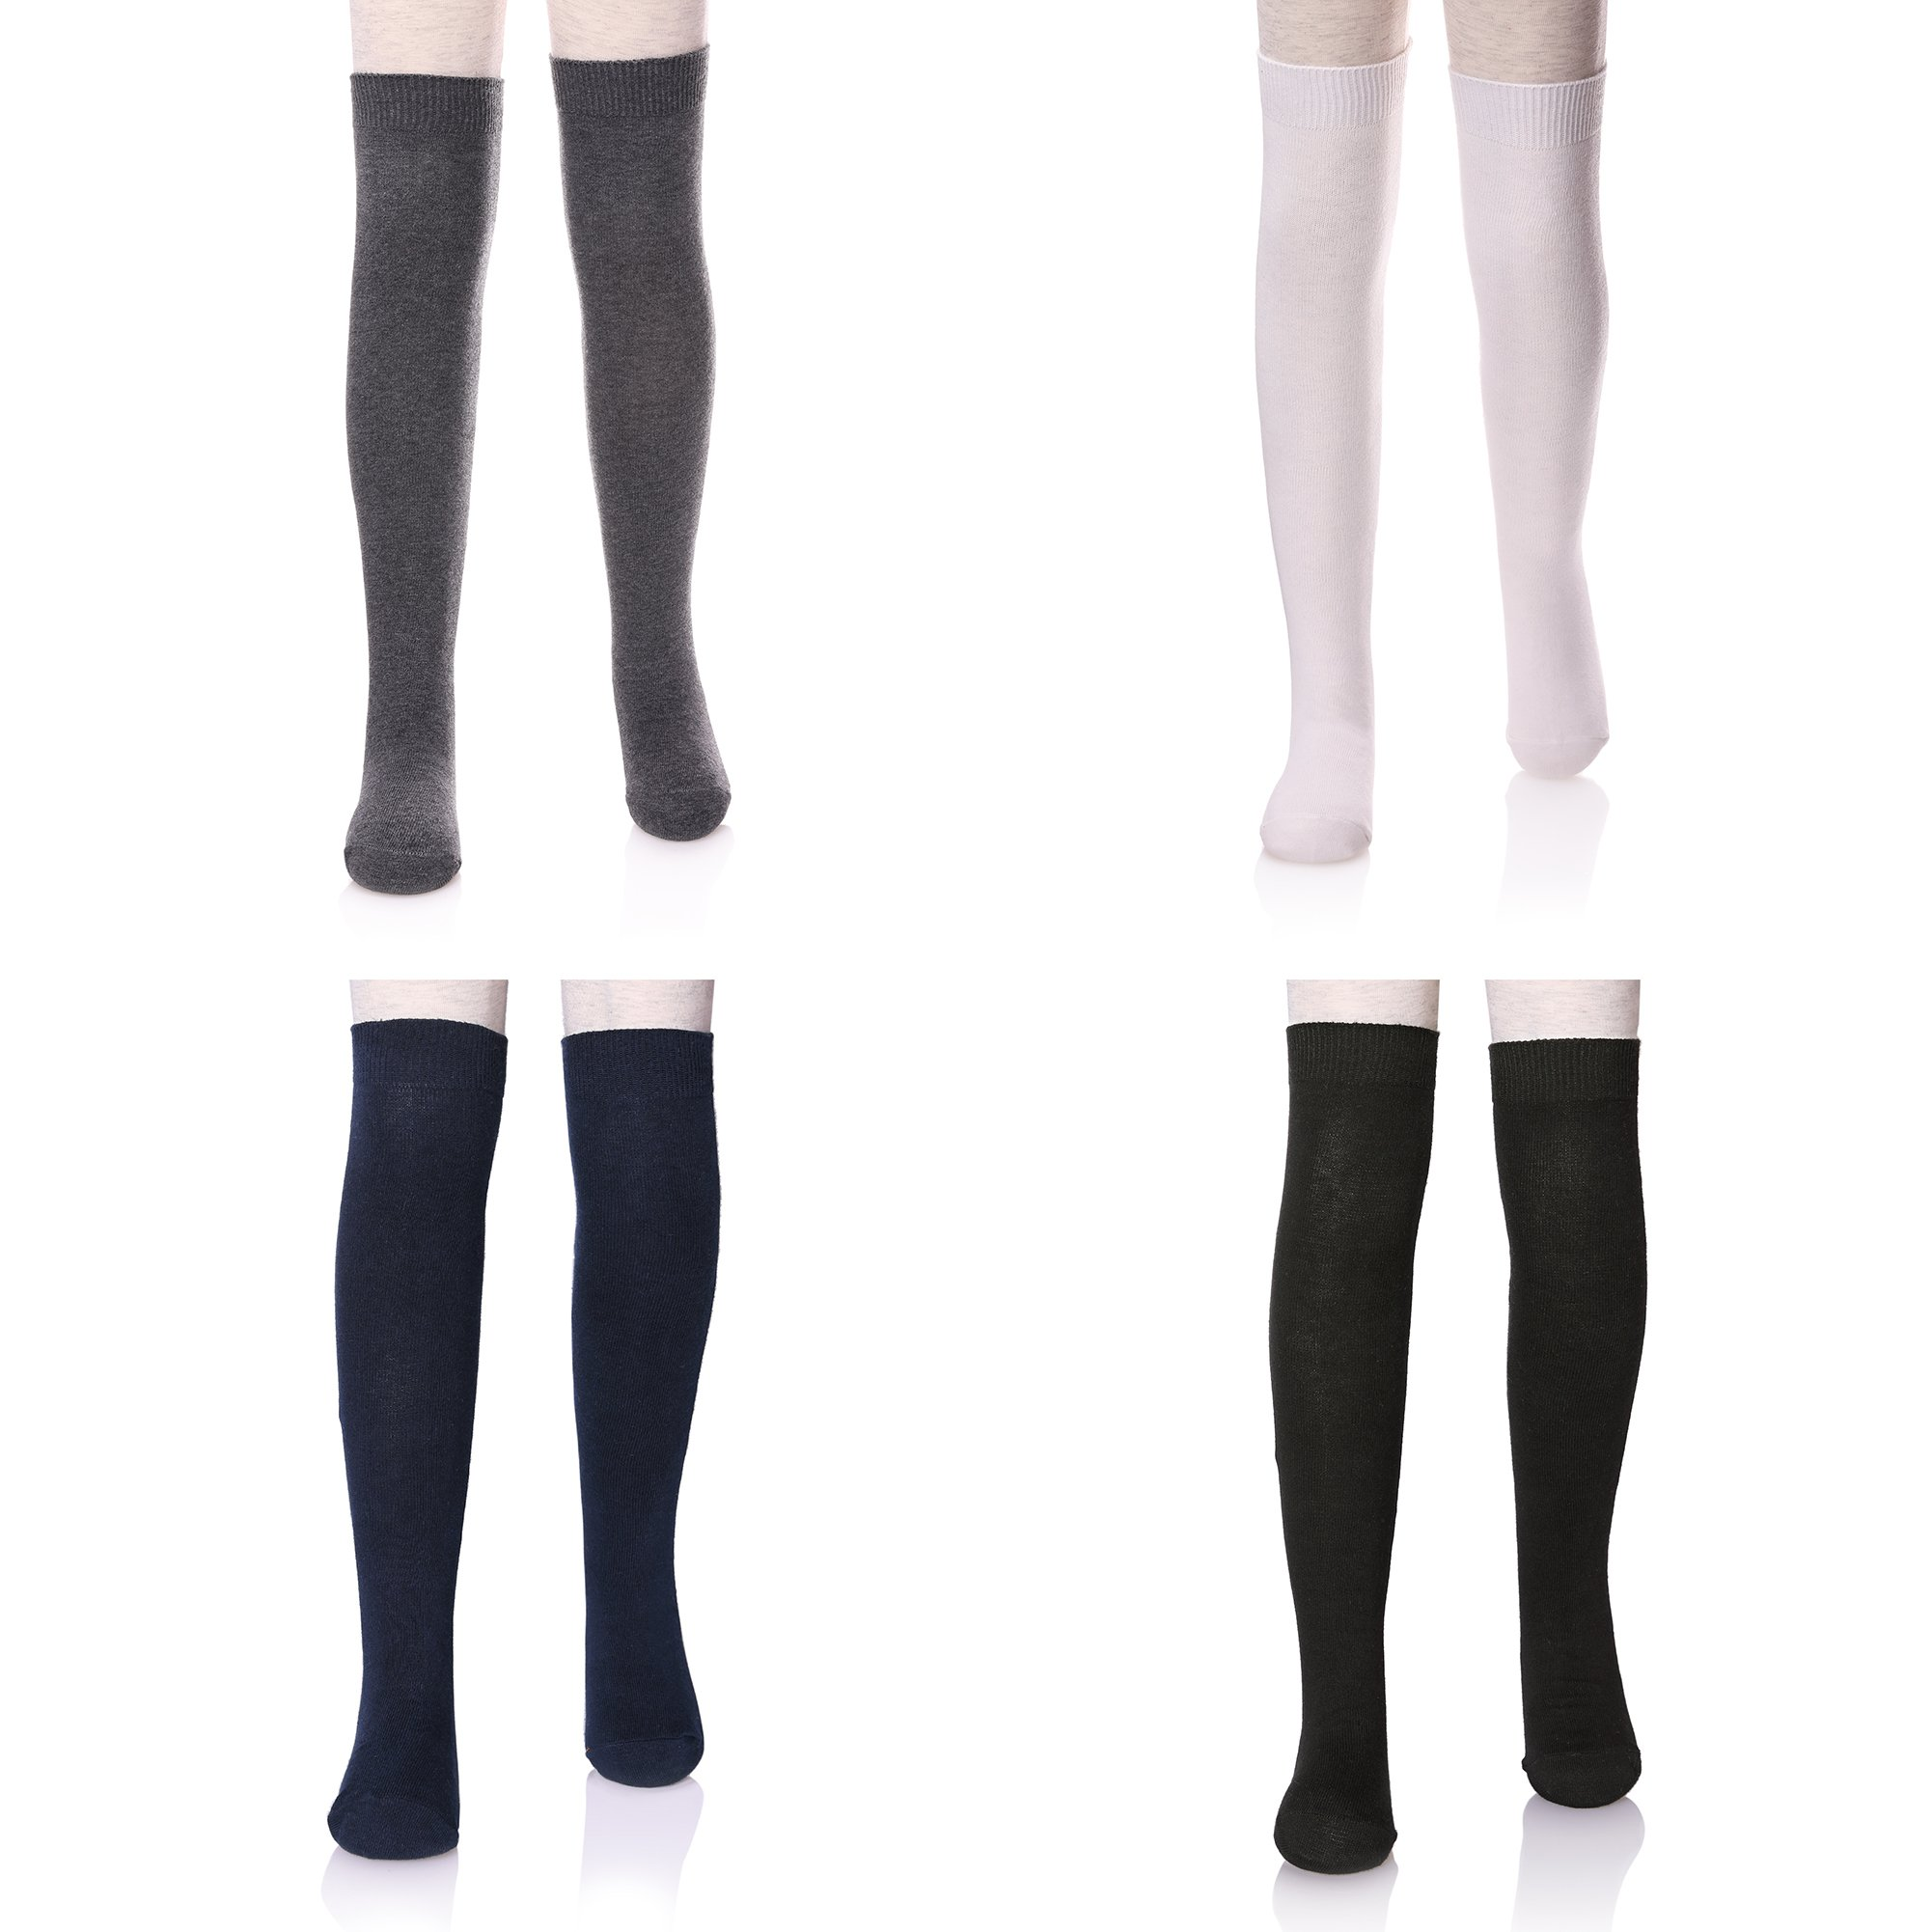 LANLEO 3/4 Pairs Girls School Uniform Over Knee High Warm Cotton Socks 3-11 Years Old (4 Color L)